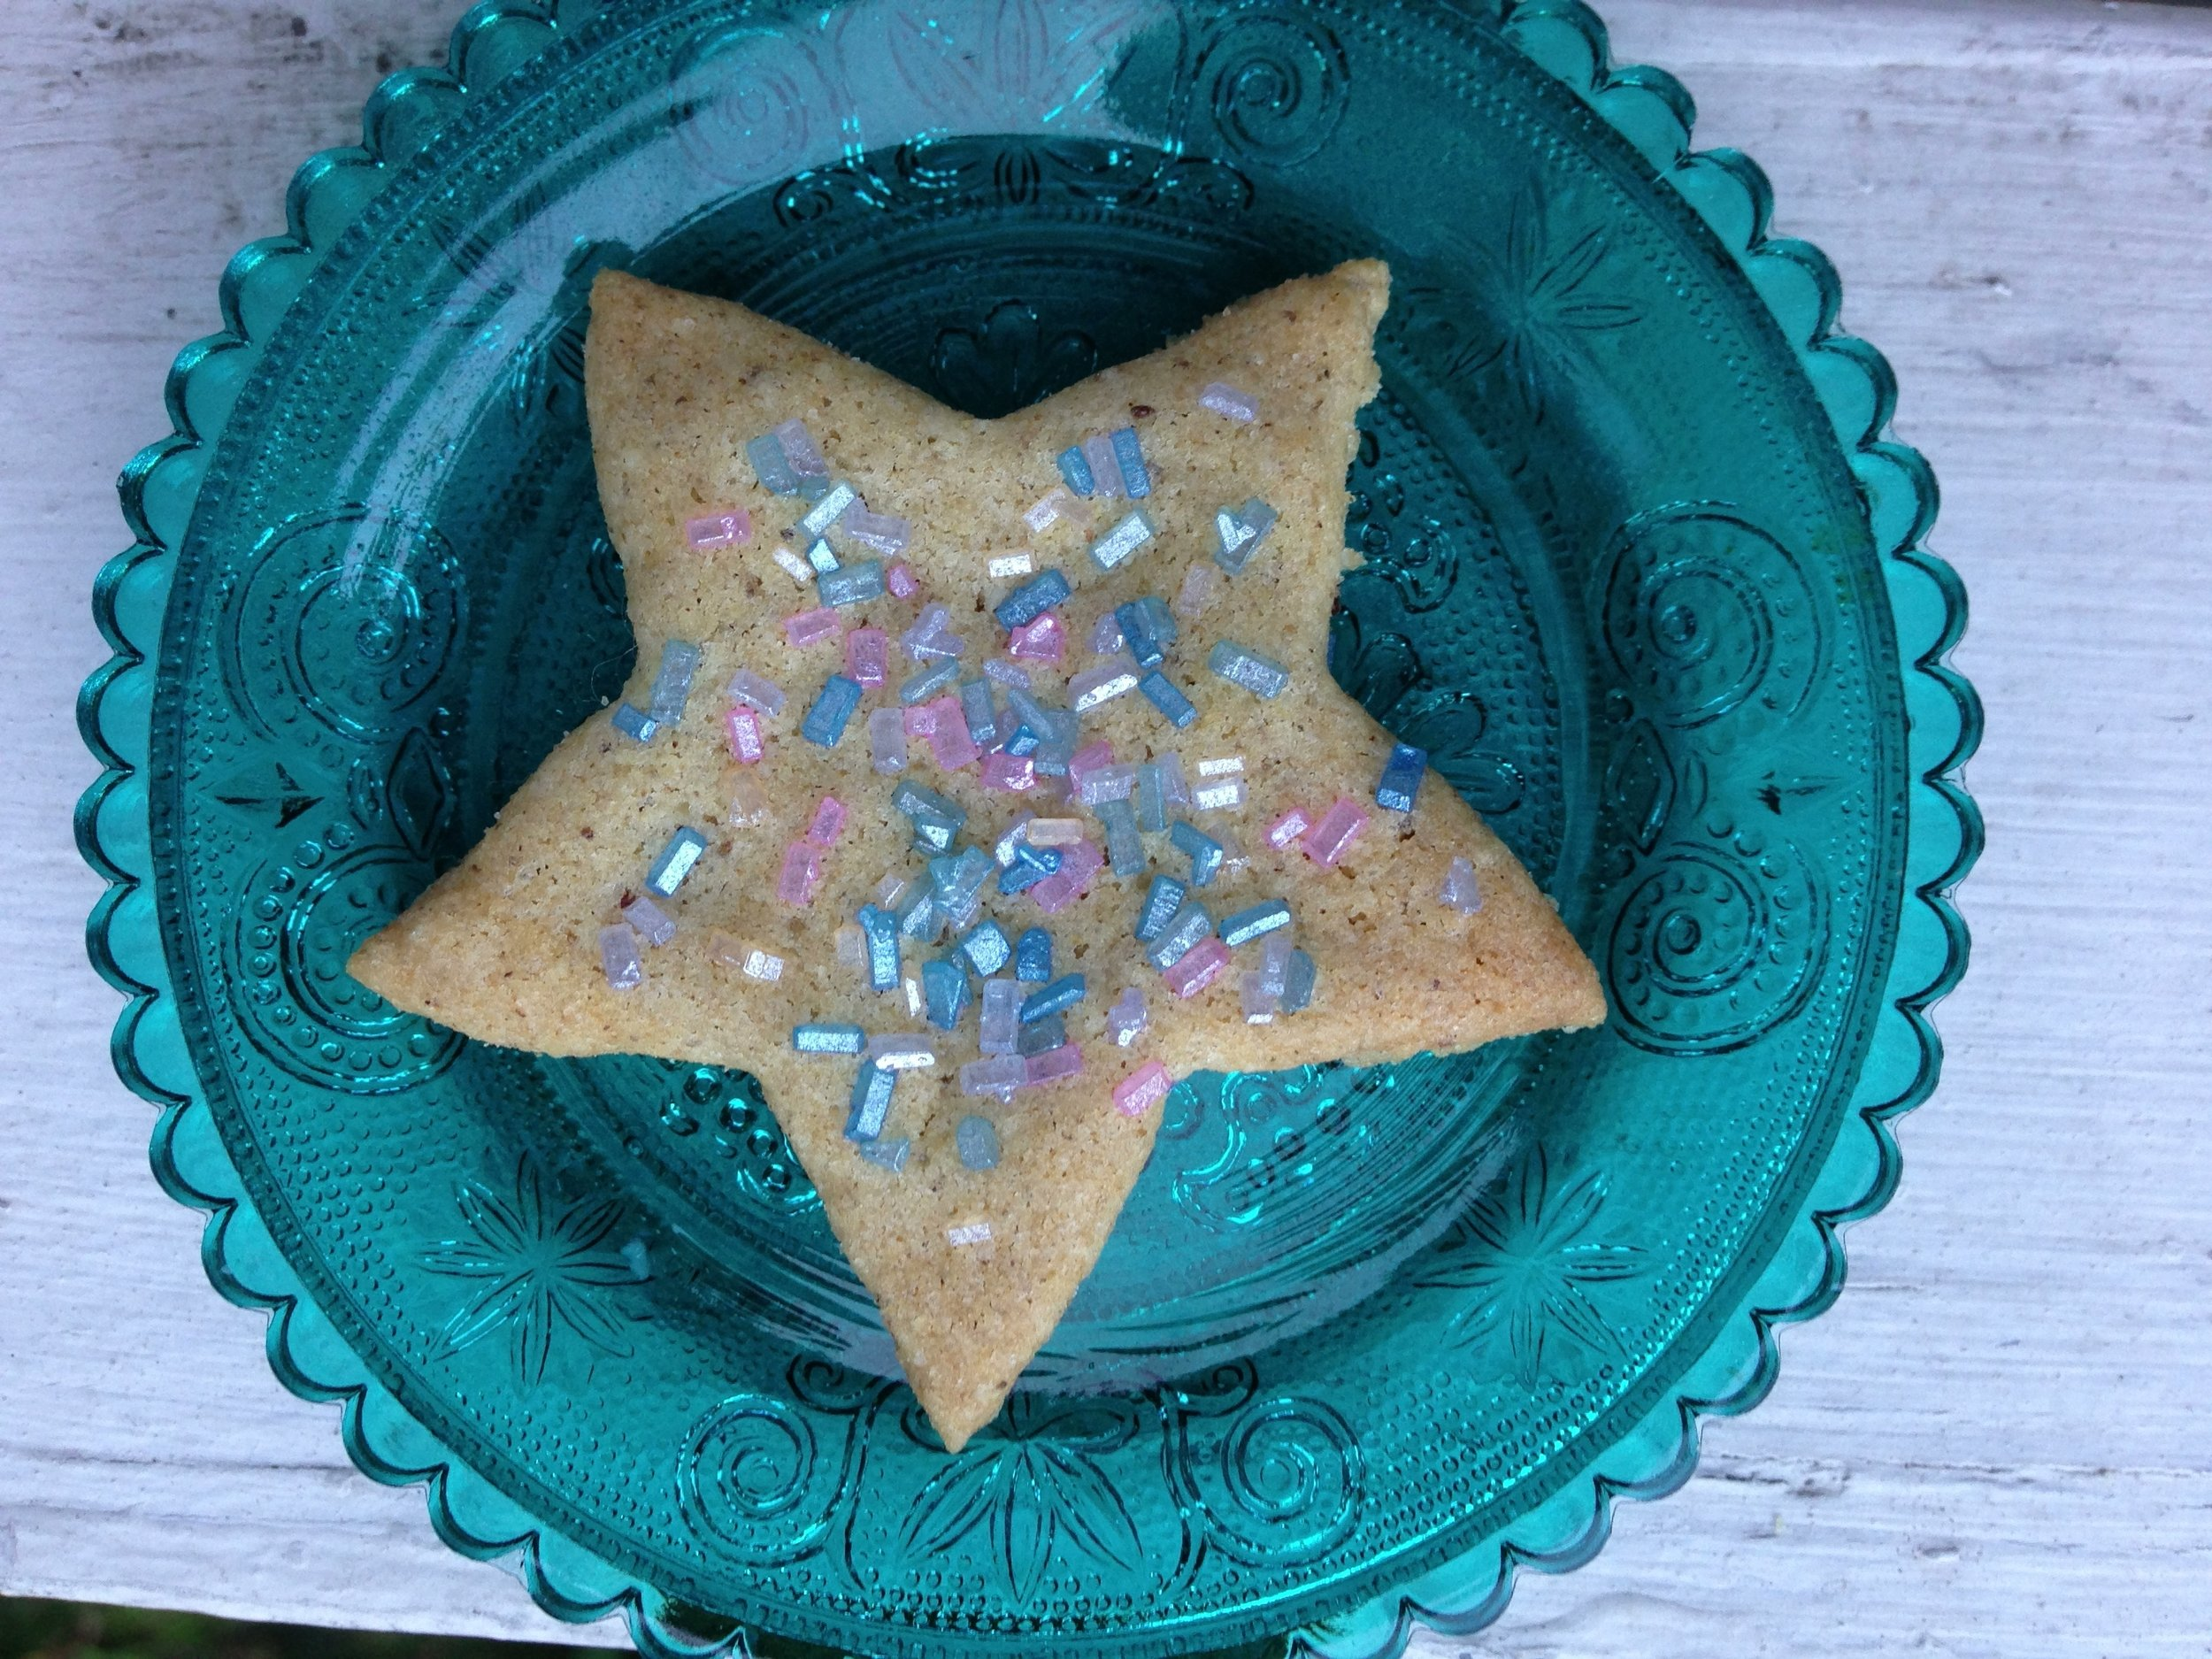 These low-FODMAP sugar cookies are gluten-free, too. They taste at least as good as, if not better than, standard sugar cookies!